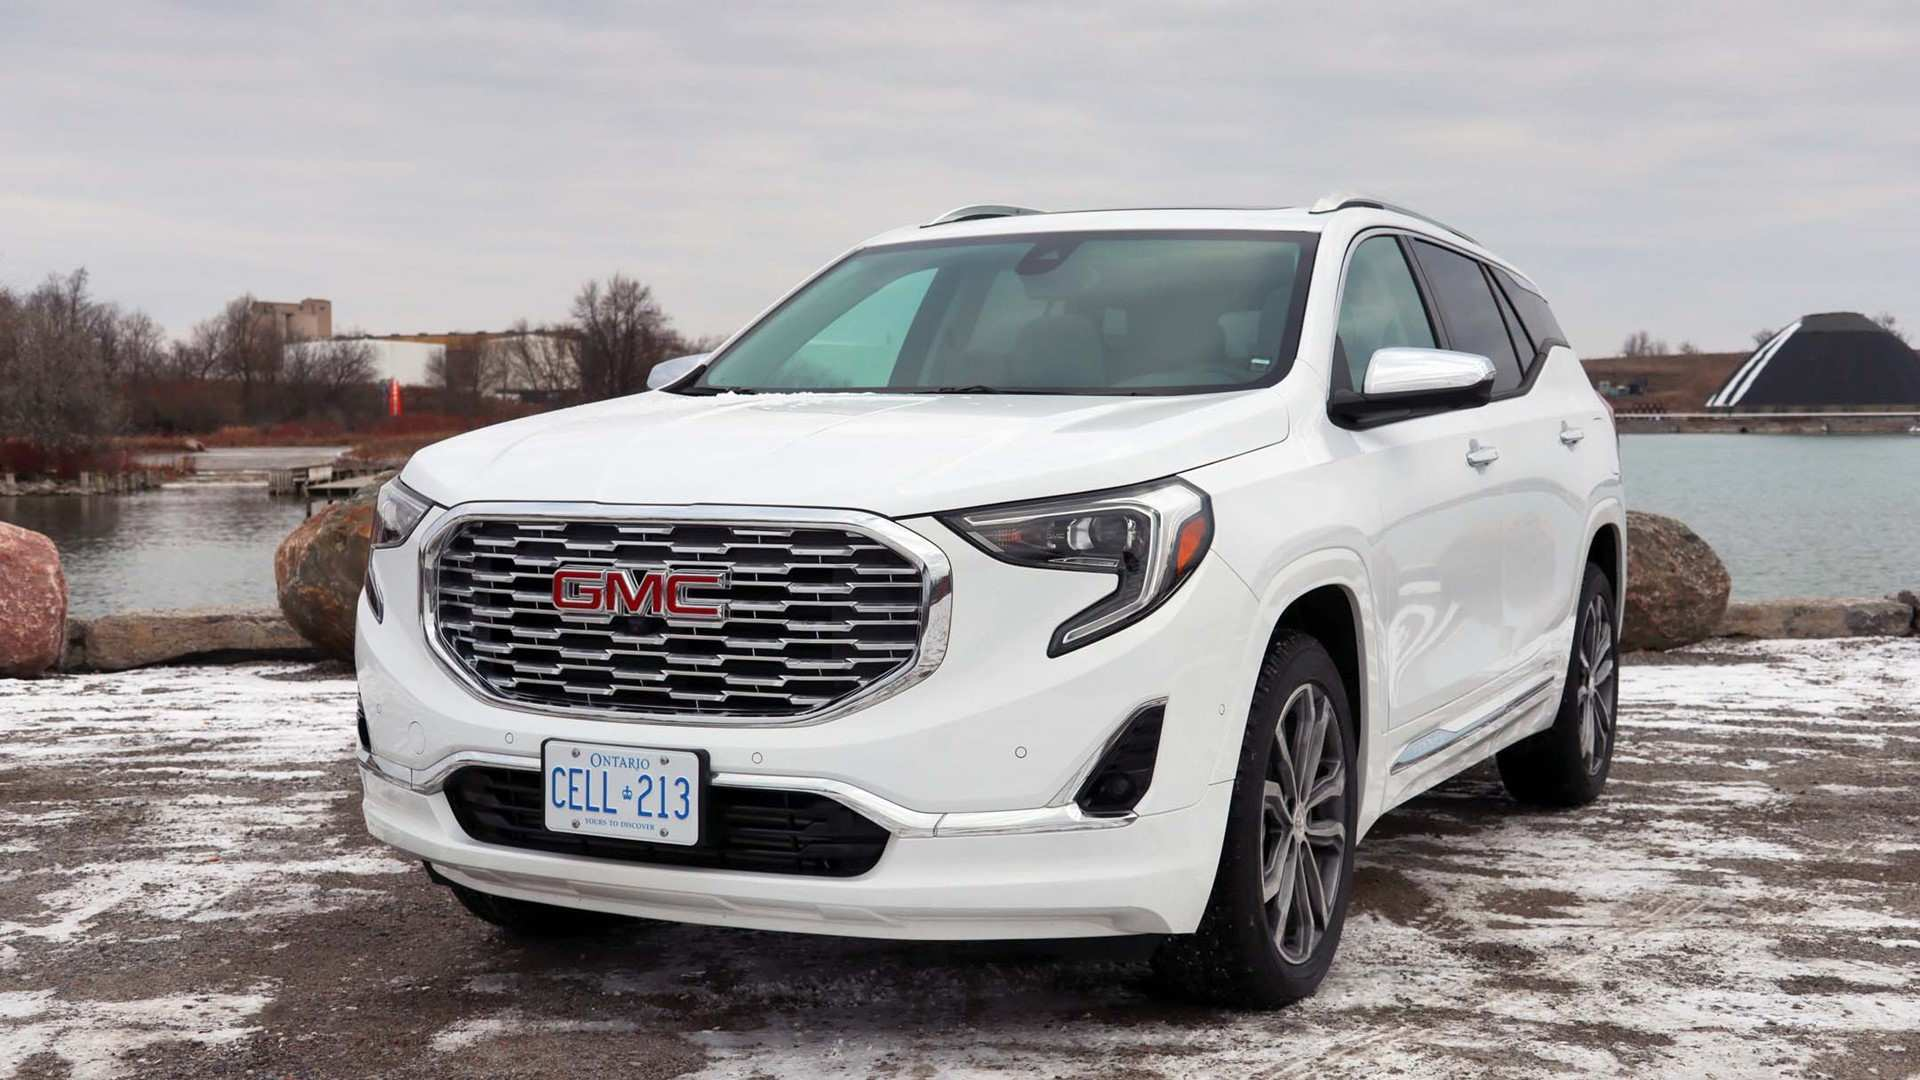 91 Best Review The Gmc Terrain 2019 White Engine Review with The Gmc Terrain 2019 White Engine